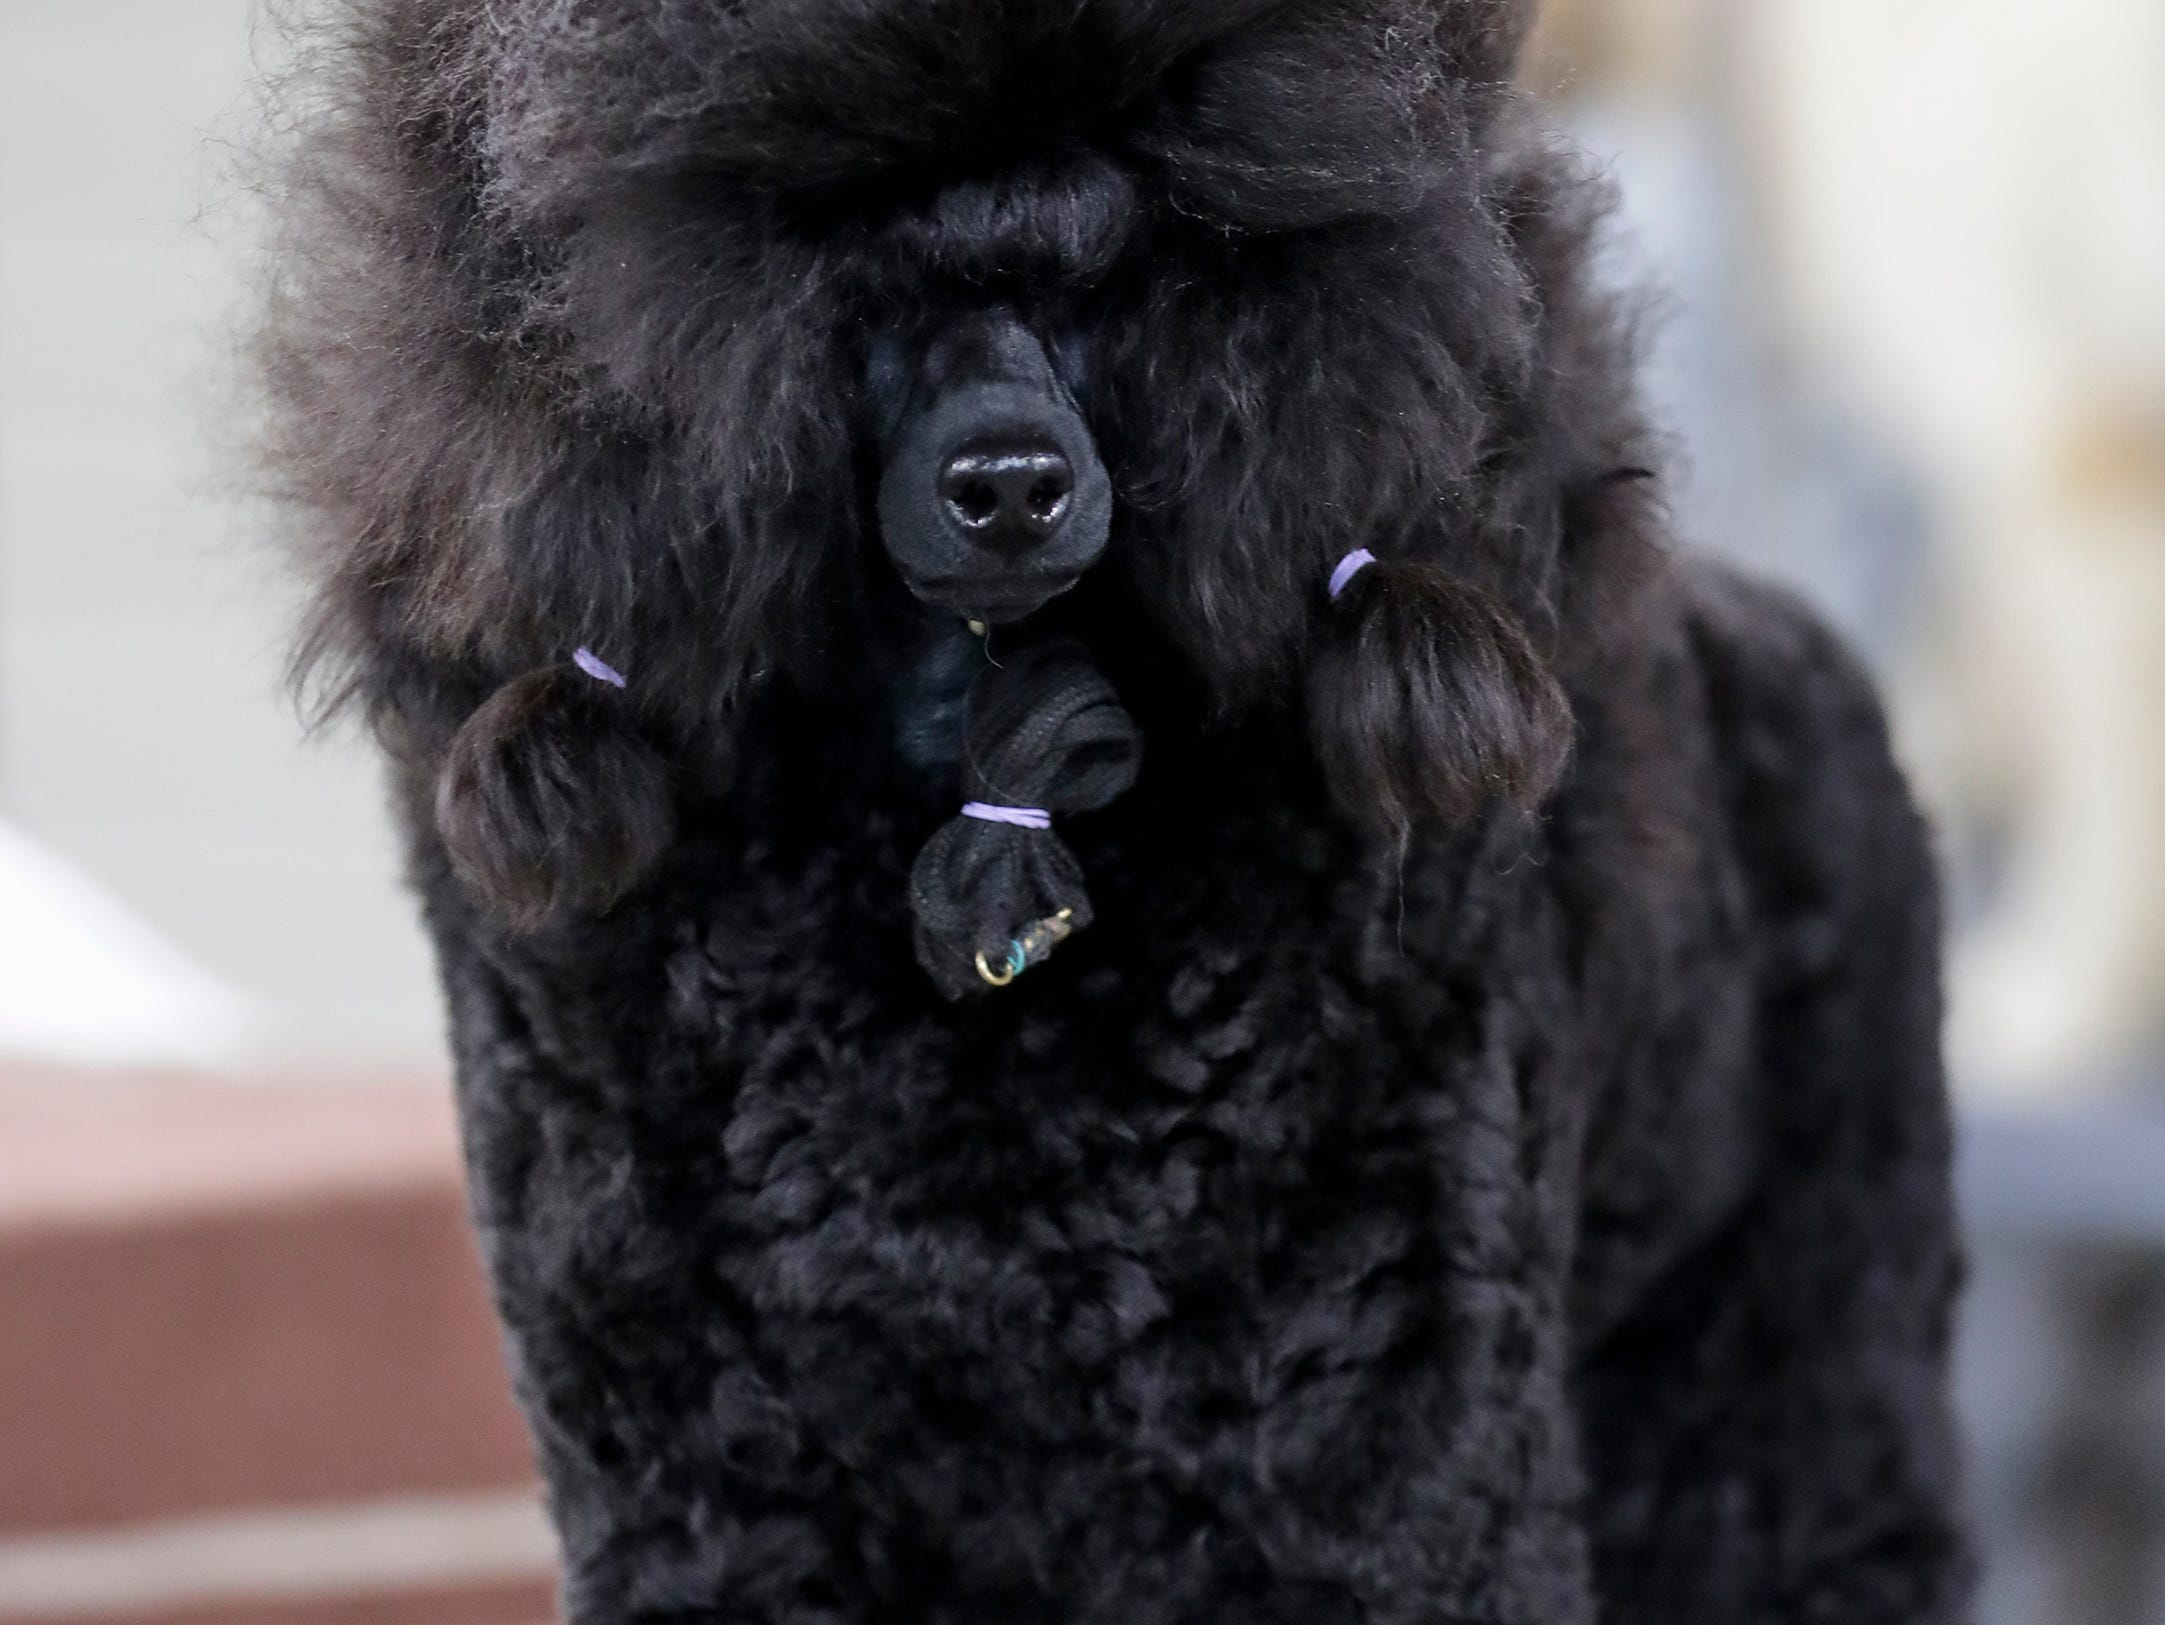 A poodle waits on the grooming table during the Northeast Wisconsin Dog Show Classic at the Manitowoc County Expo Center Thursday, March 28, 2019, in Manitowoc, Wis. Joshua Clark/USA TODAY NETWORK-Wisconsin